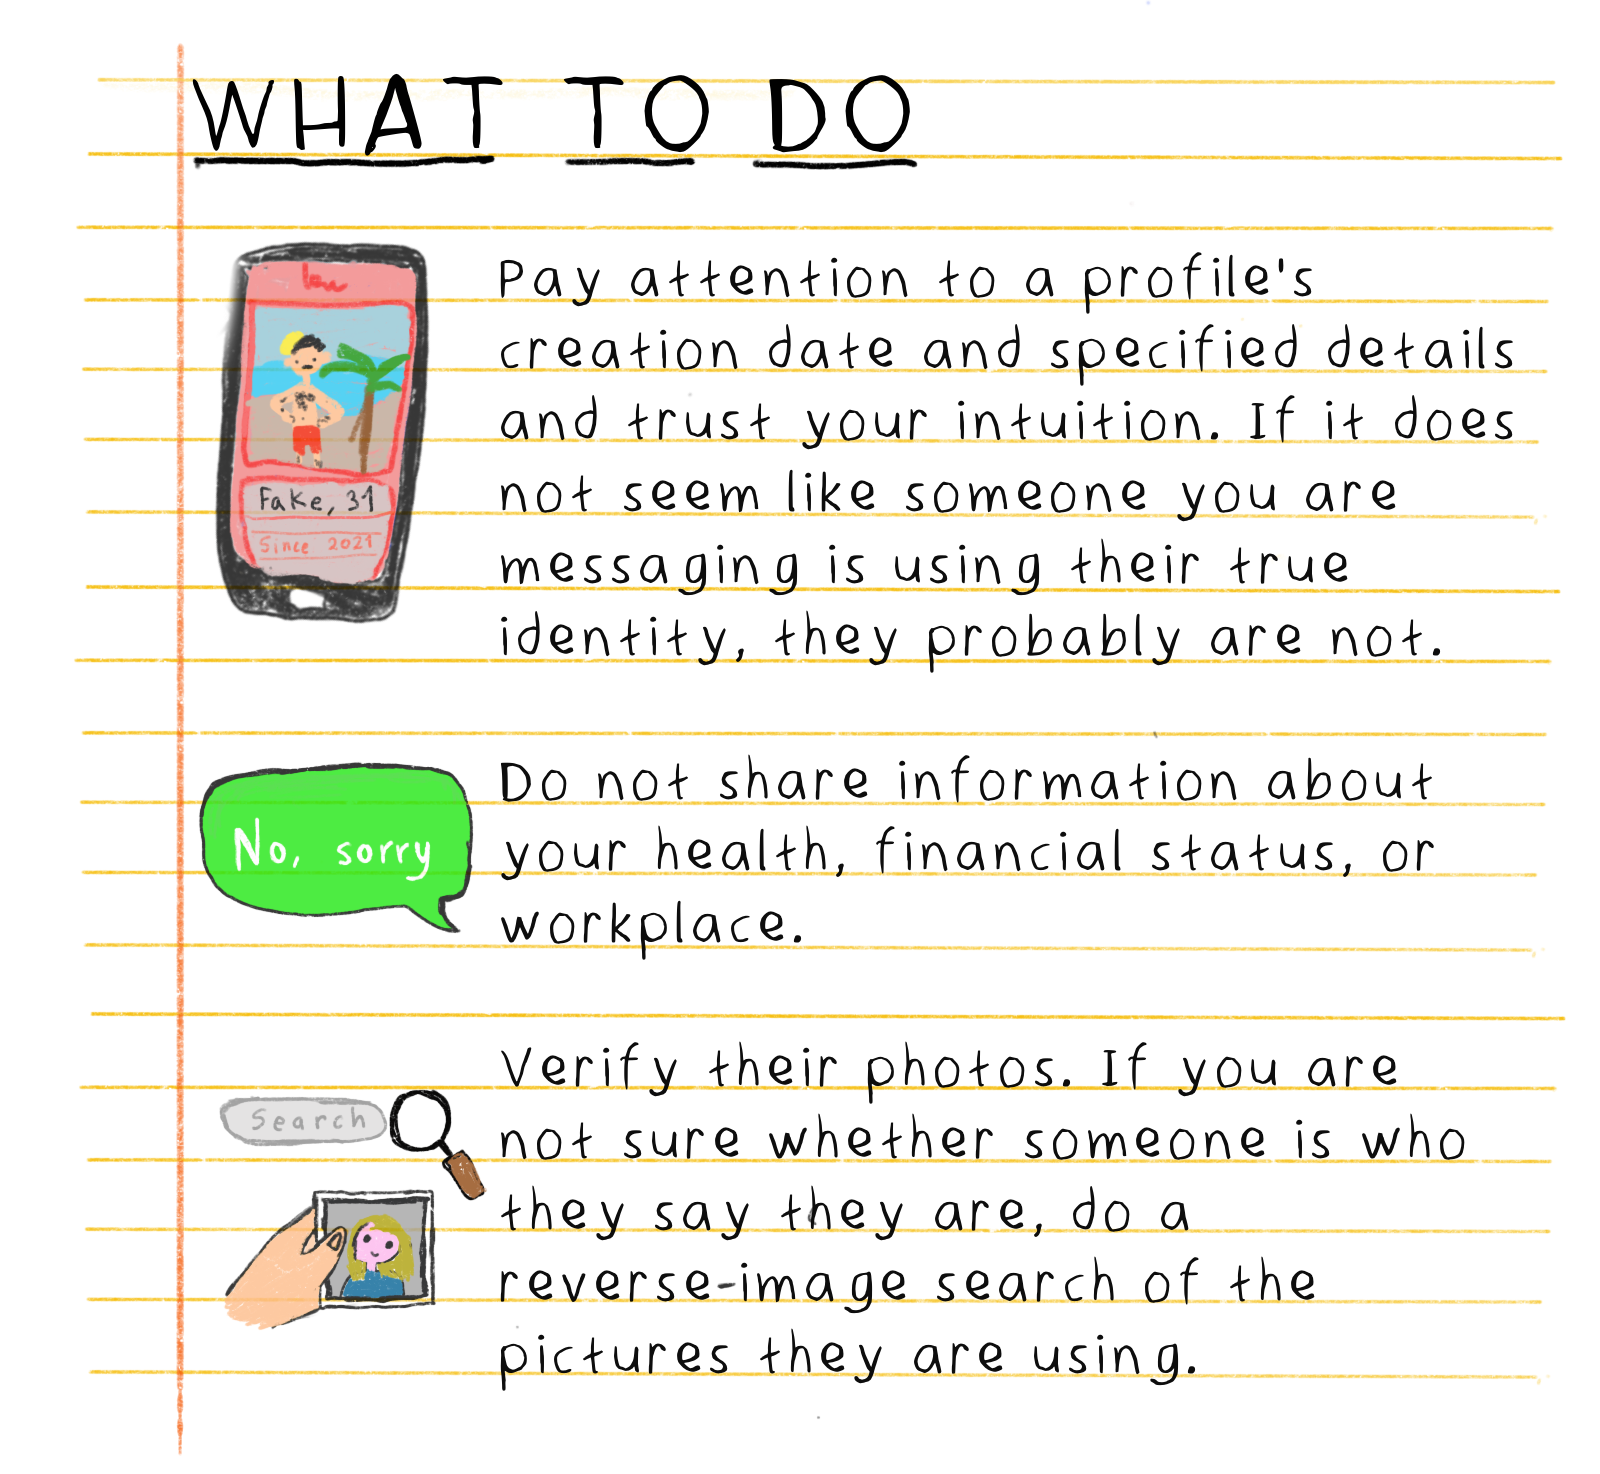 What to do: Pay attention to a profile's creation date and specified details and trust your intuition. If it does not seem like someone you are messaging is using their true identity, they probably are not. Do not share information about your health, financial status, or workplace. Verify their photos. If you are not sure whether someone is who they say they are, do a reverse-image search of the pictures they are using.